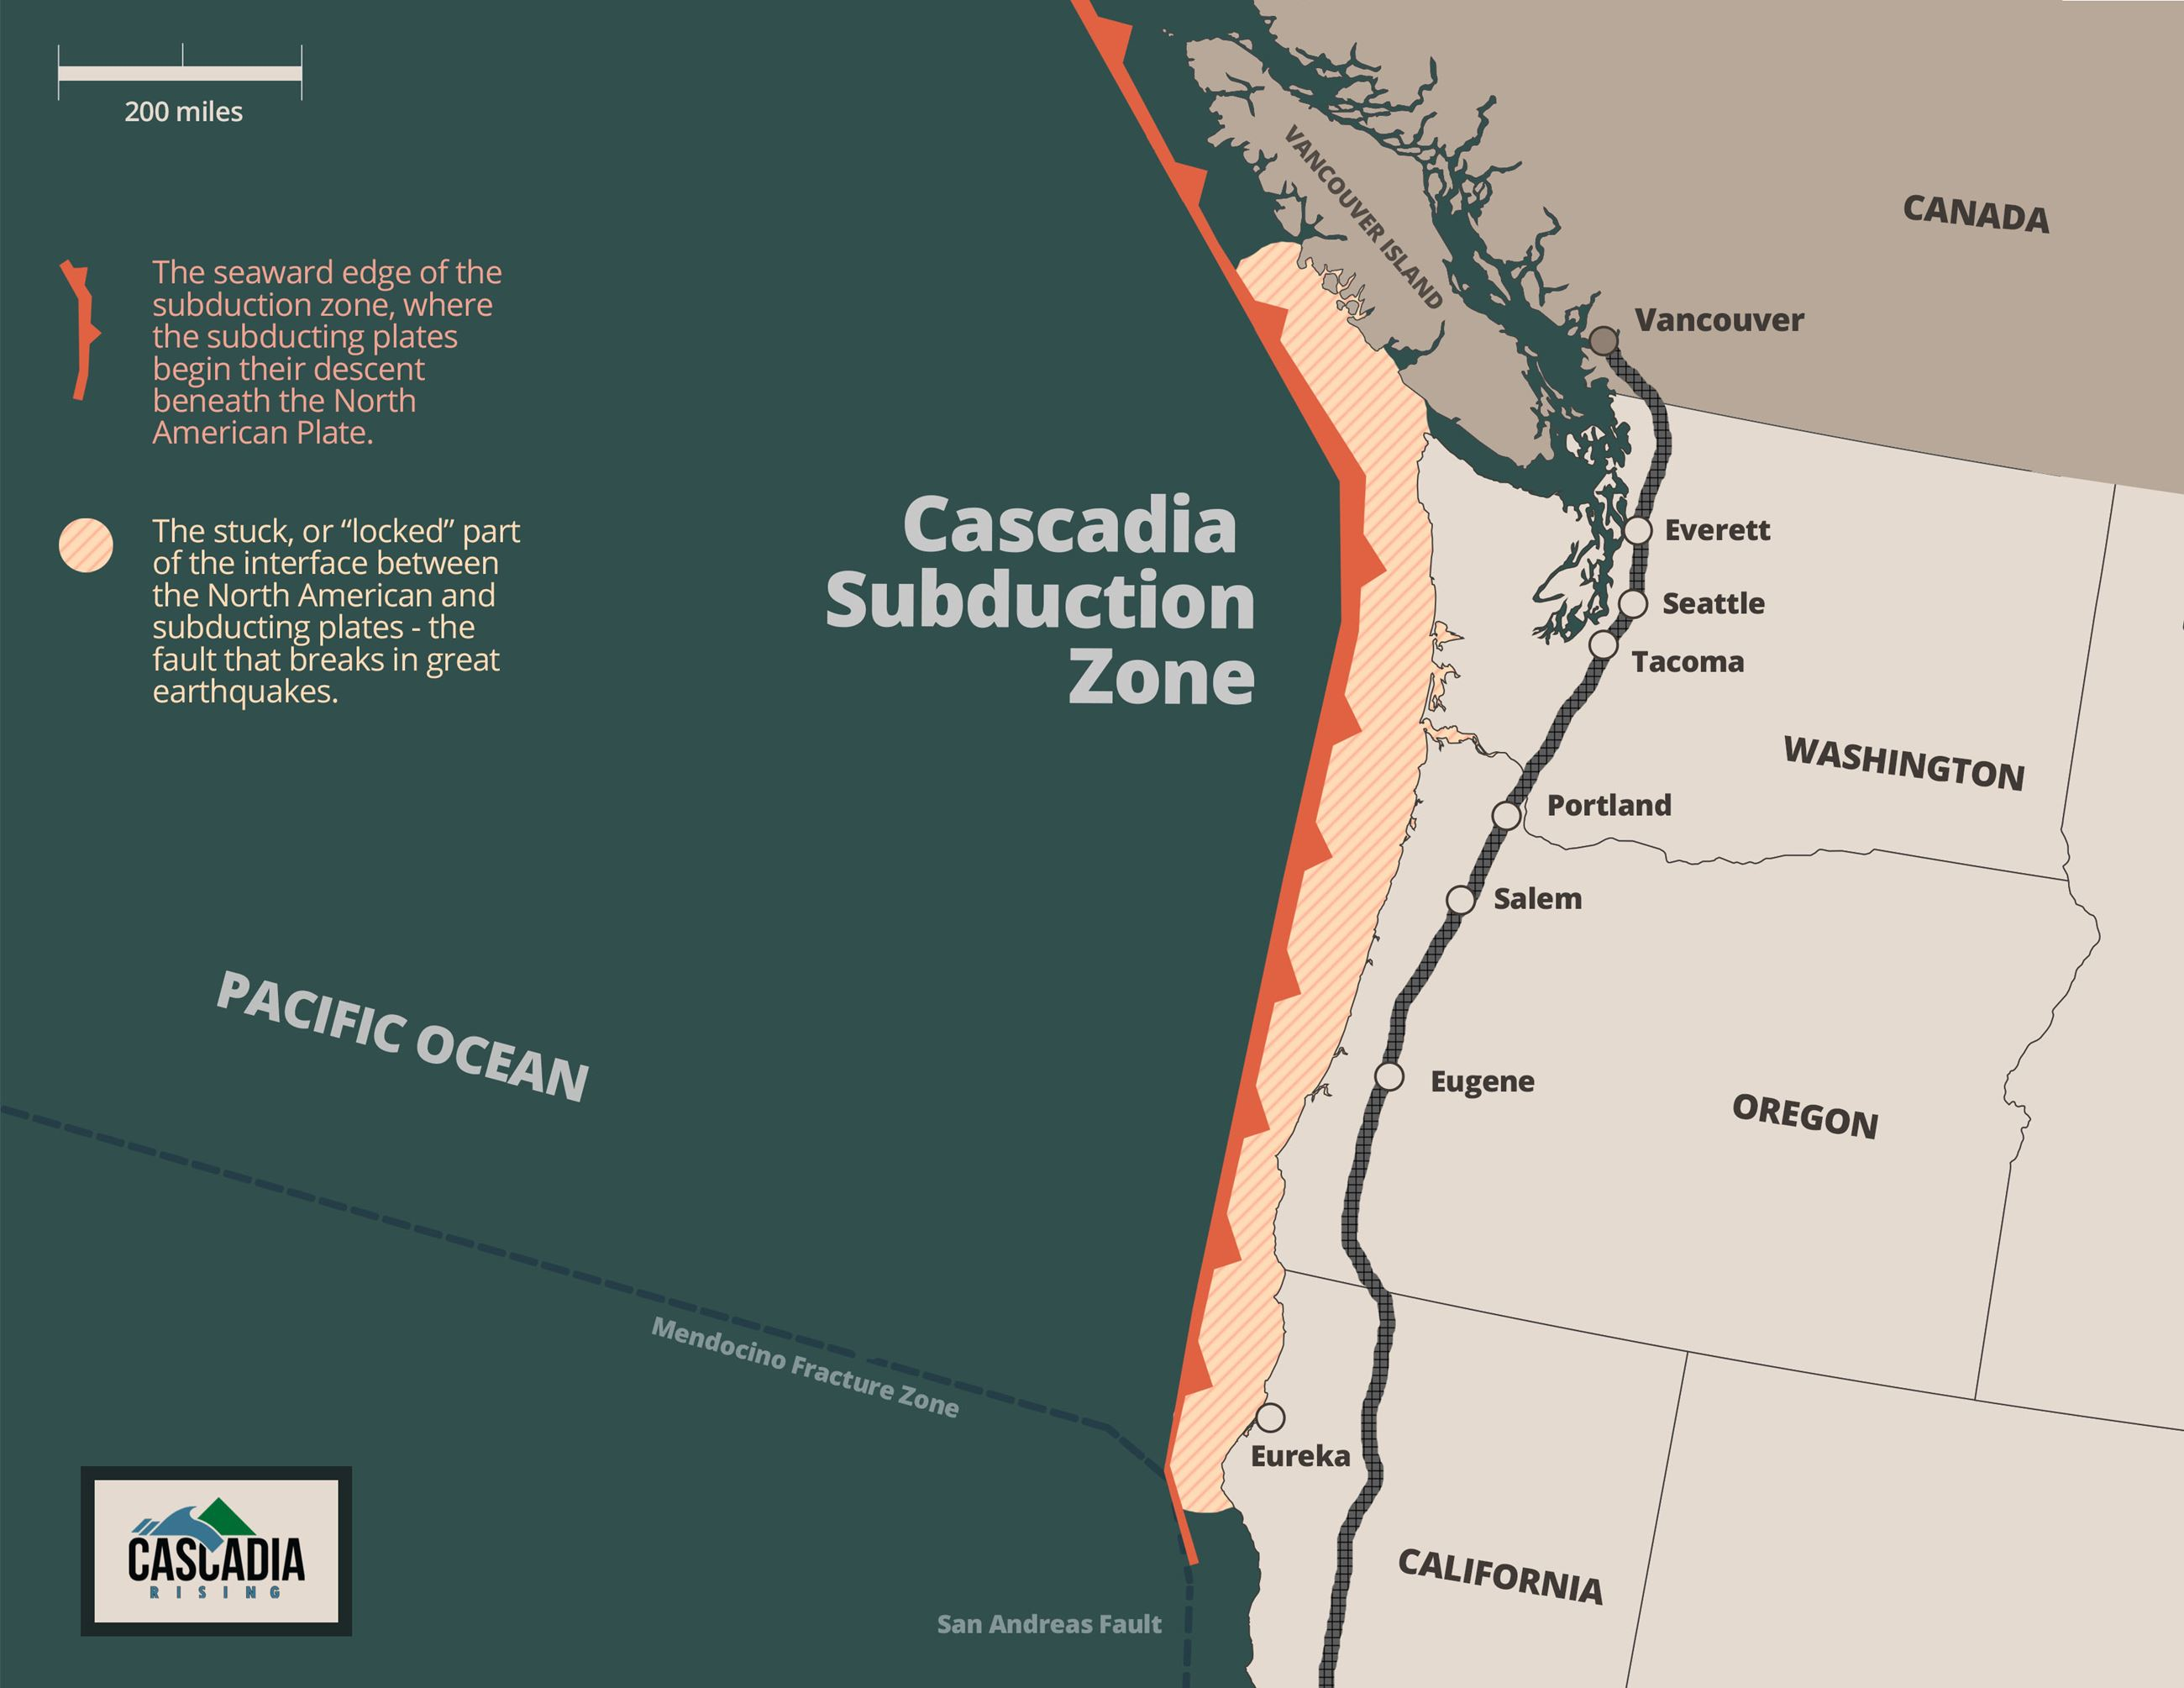 map_cascadia_subduction_zone